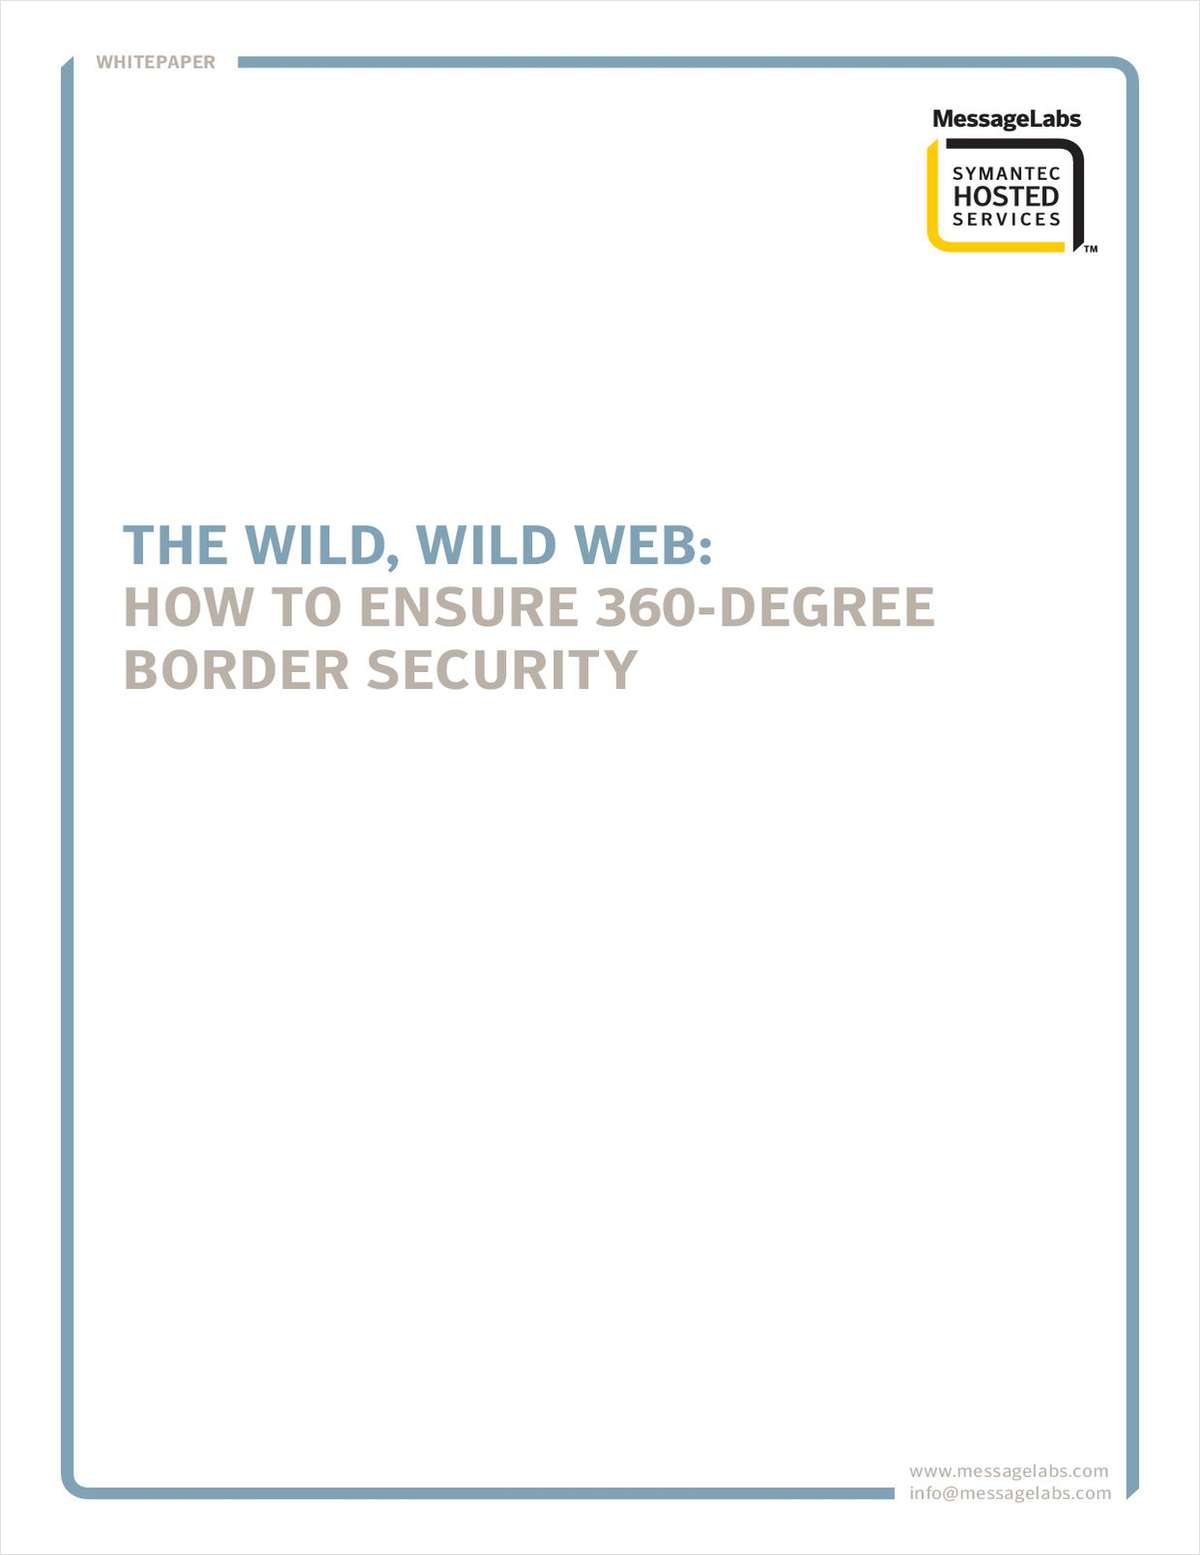 The Wild, Wild Web: How to Ensure 360-Degree Border Security